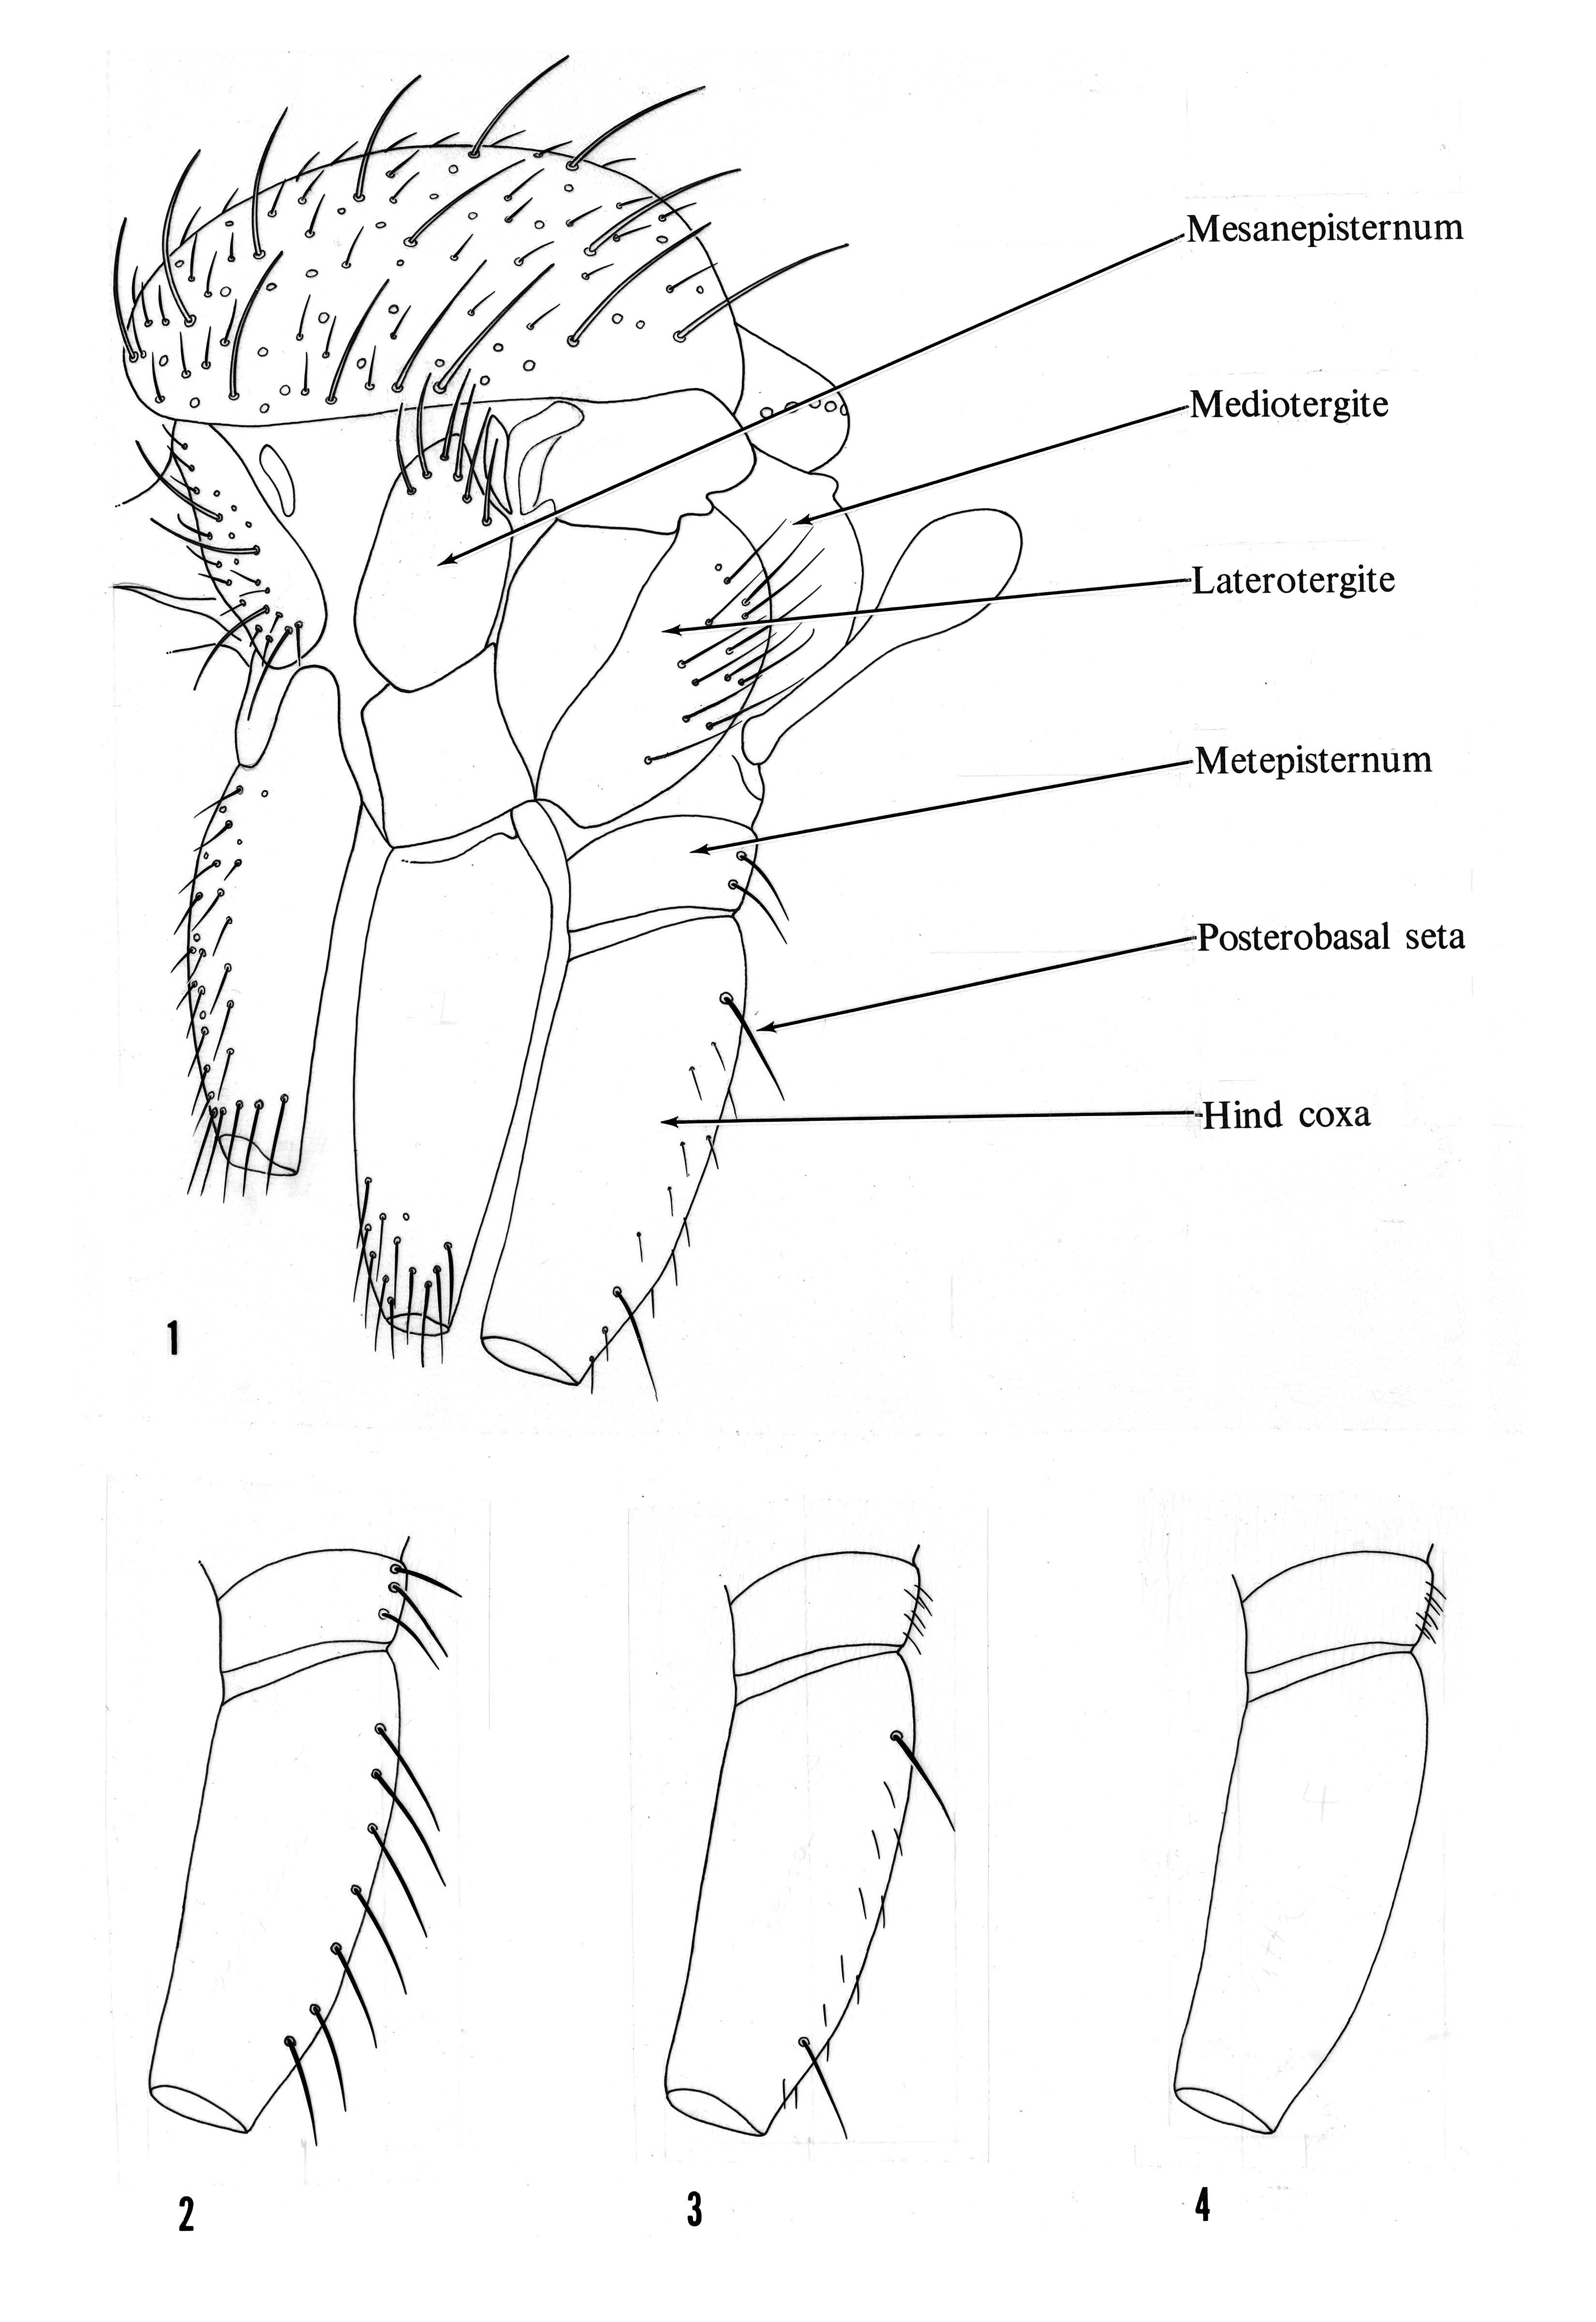 Image of Trichonta